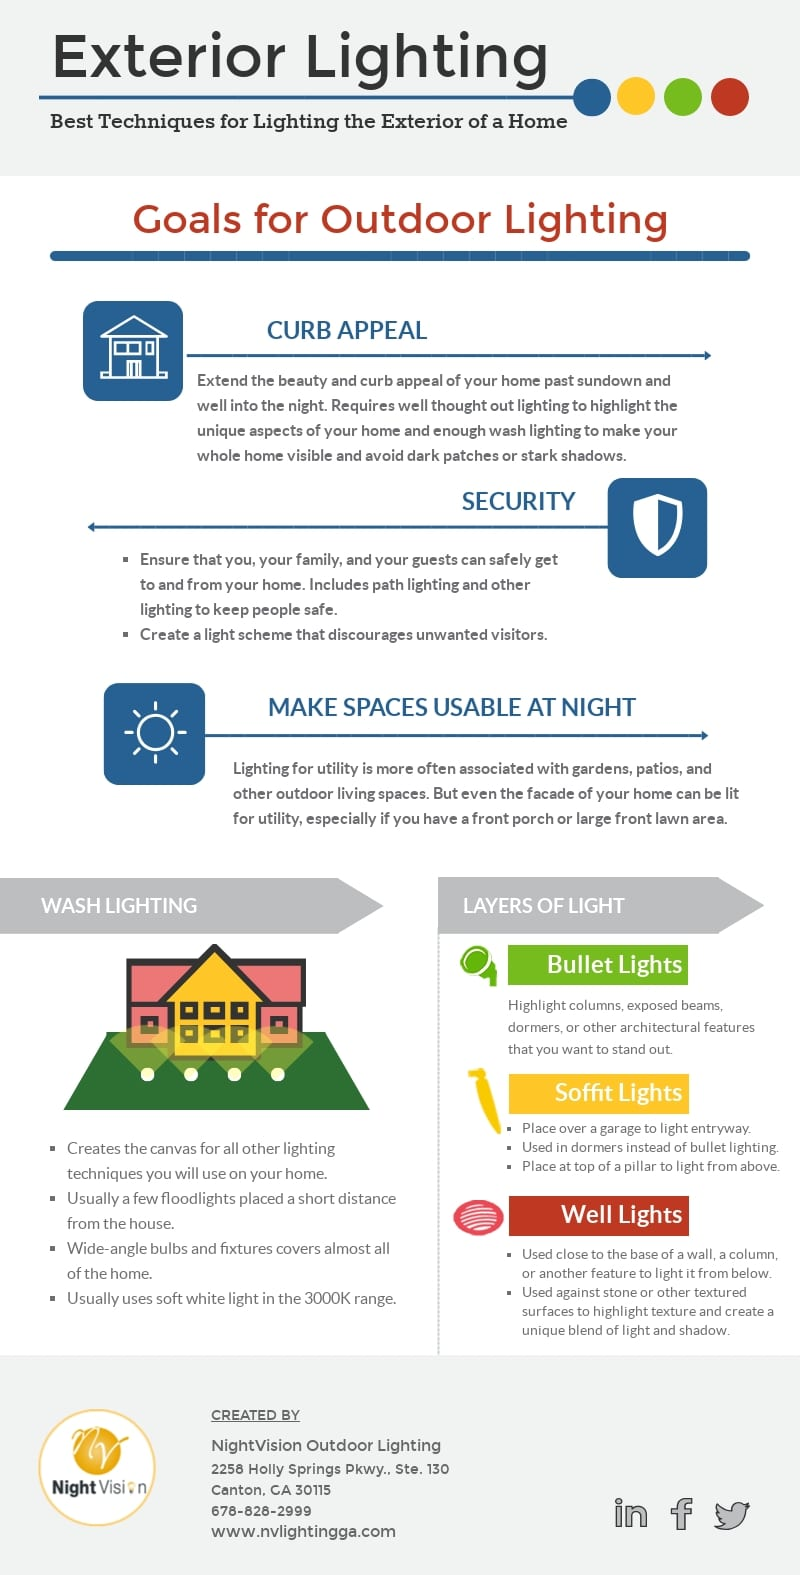 Best Techniques for Lighting the Exterior of a Home [infographic]